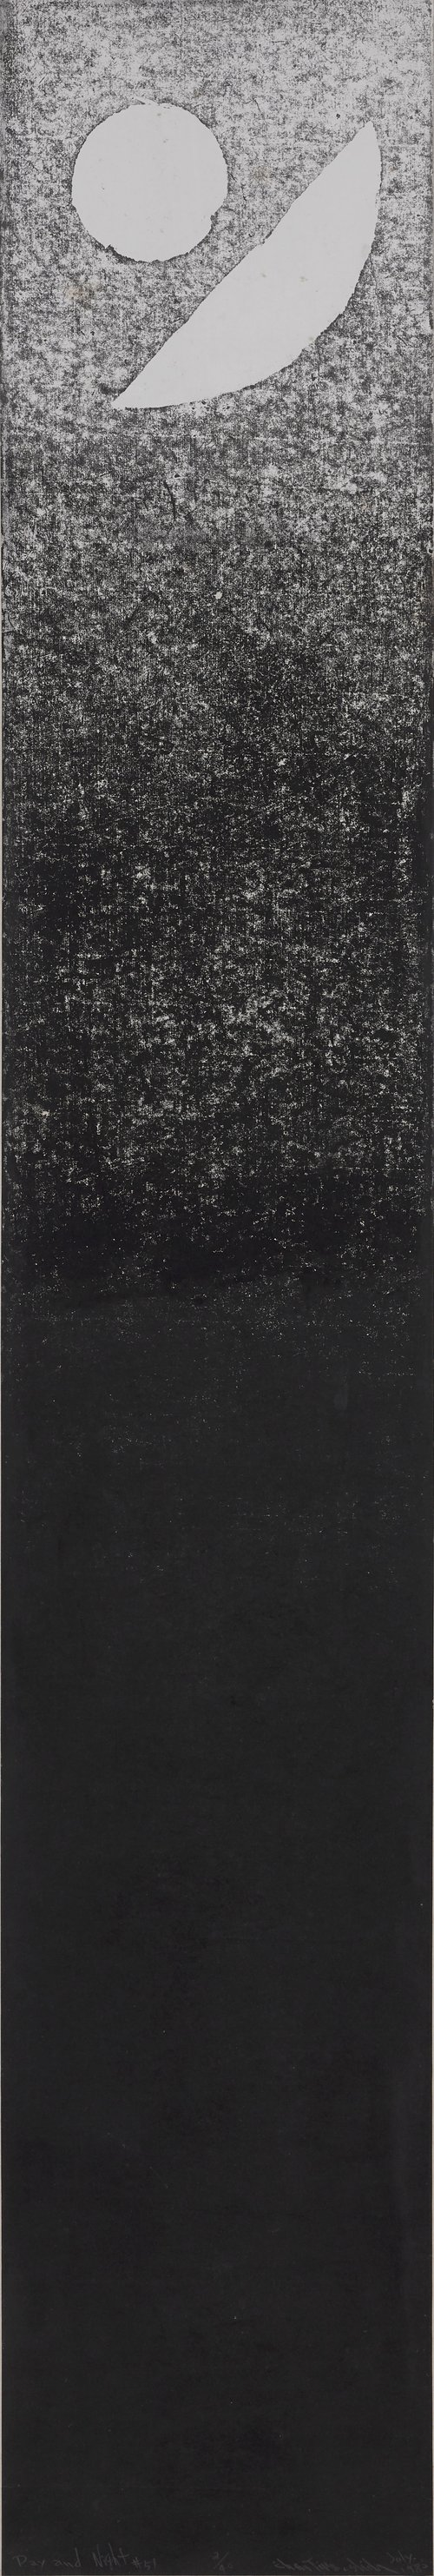 Chen Ting-Shih, Day and Night #51, woodcut print, 181 x 30.5 cm, 1982